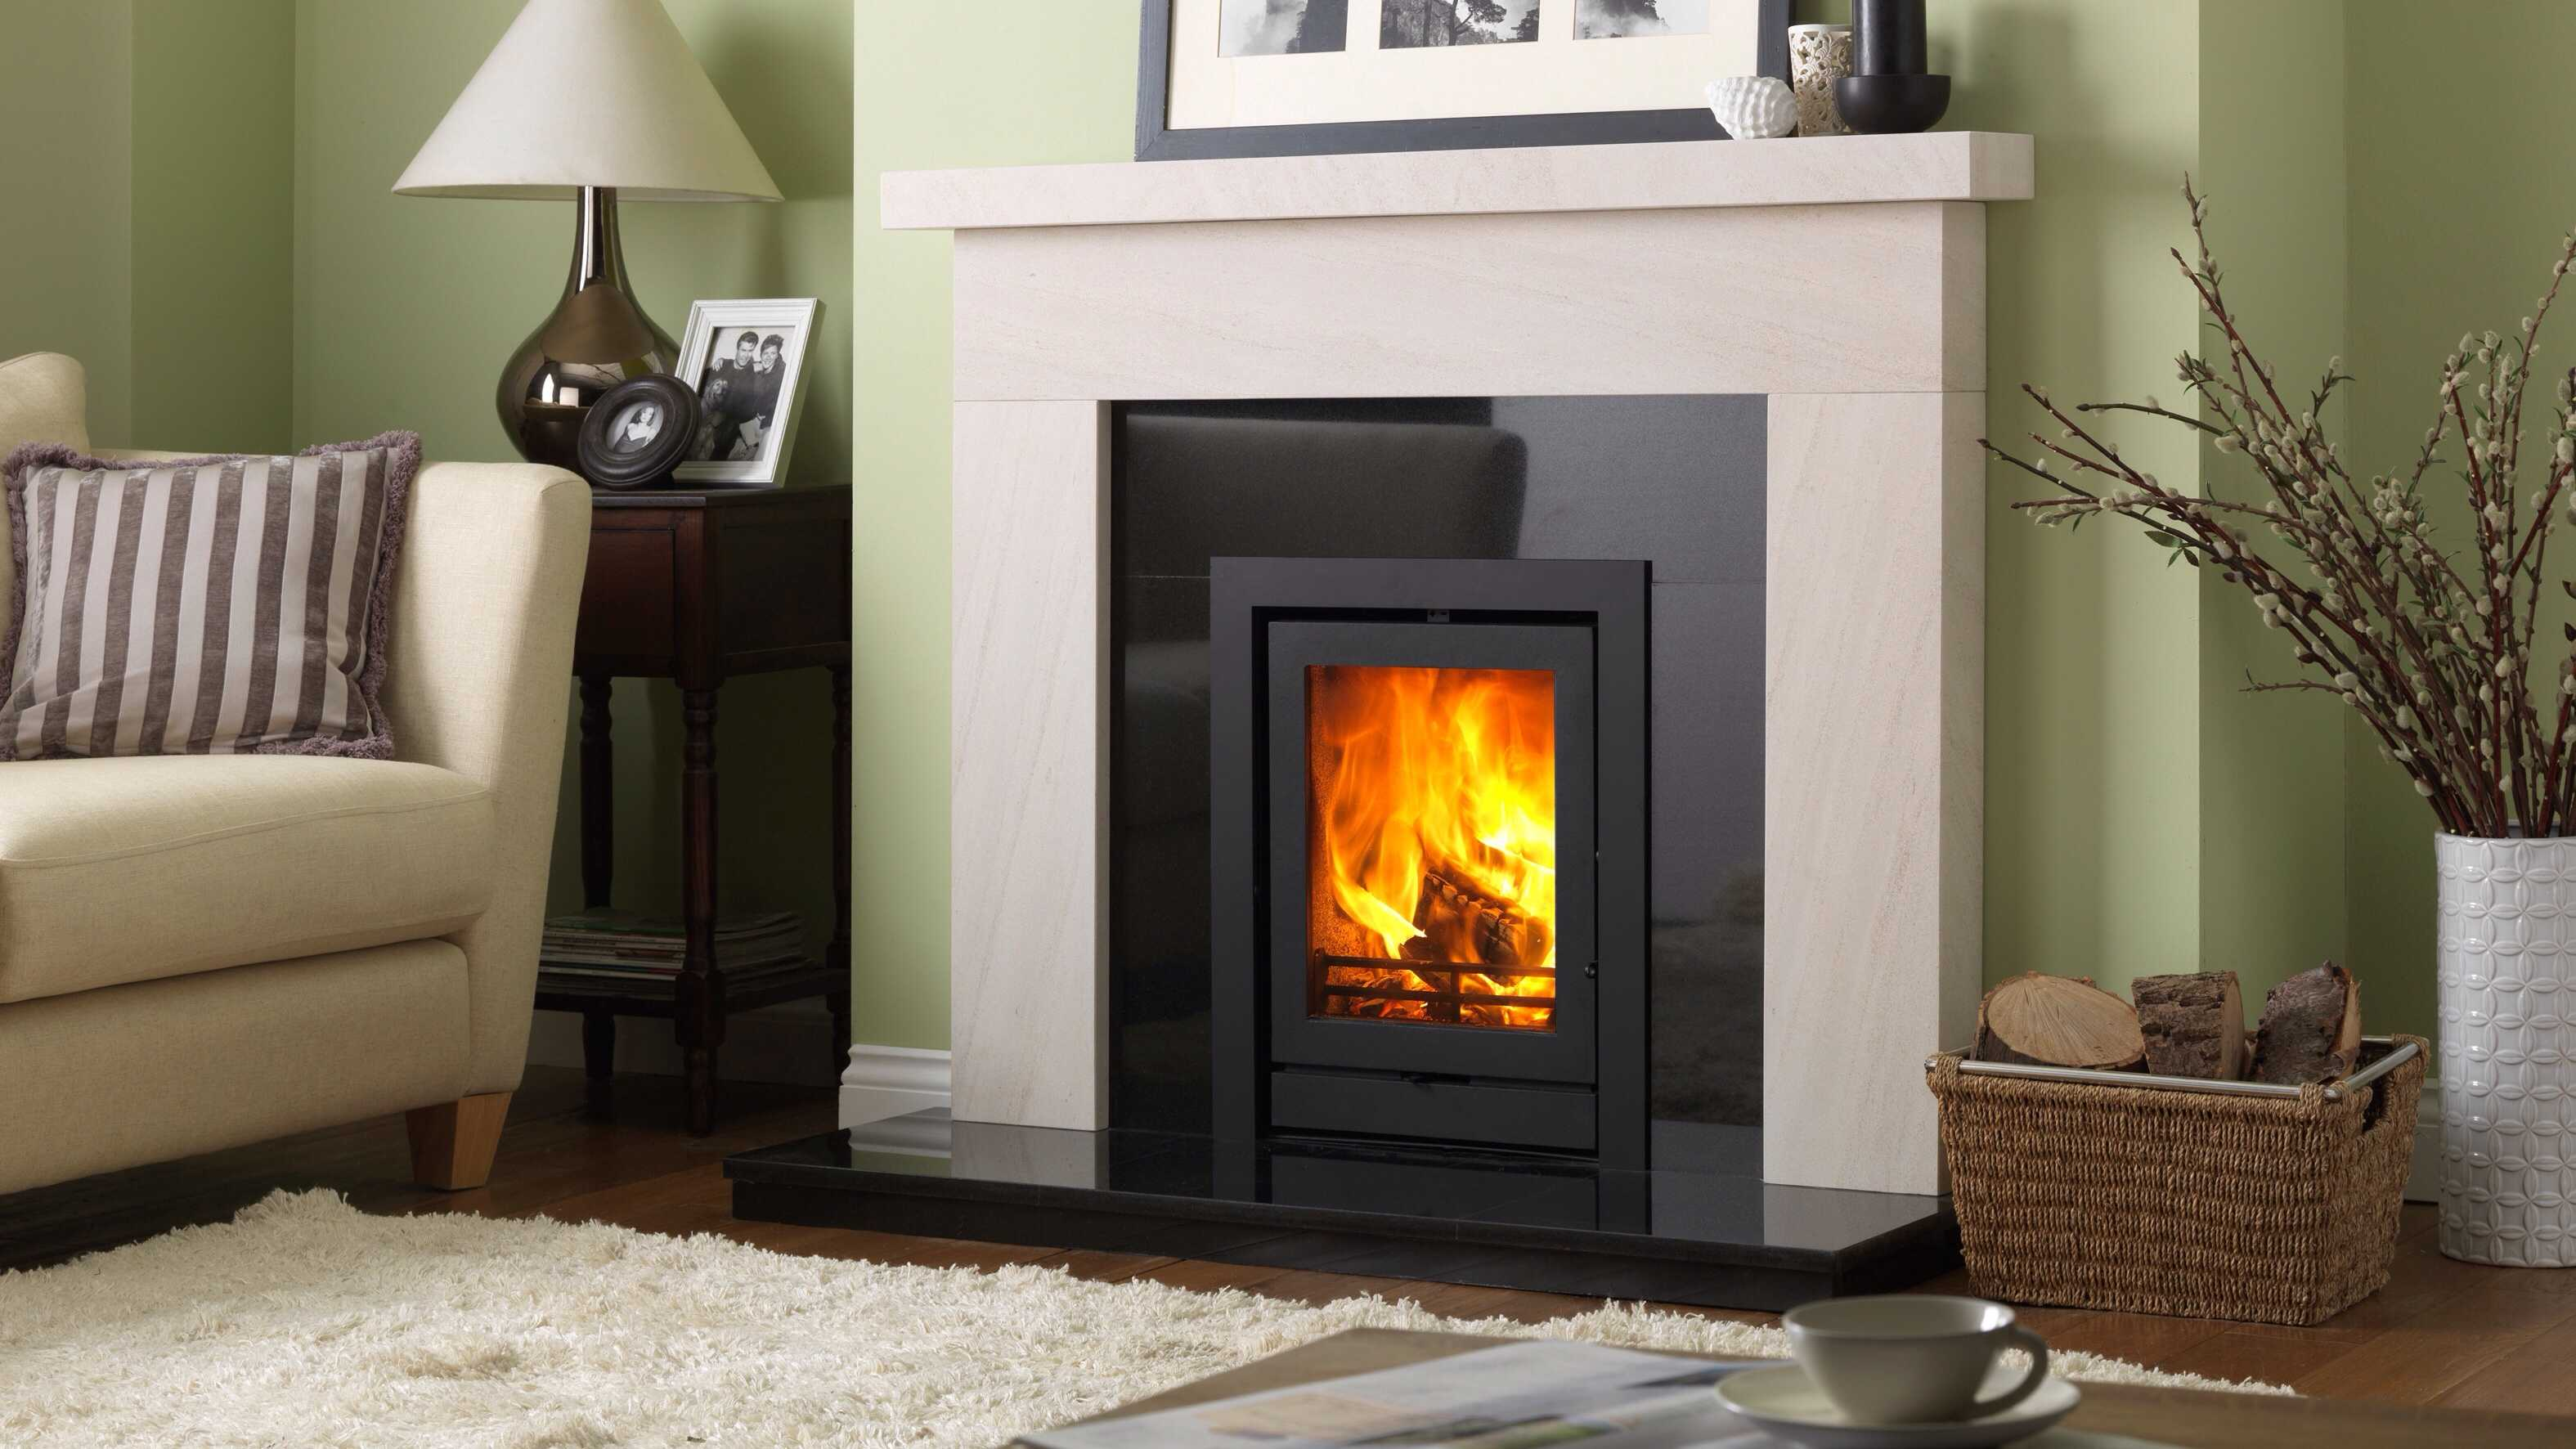 led realistic effect kitchen amazon ivory flame chichester fireplace home suite co unlimited warmlite fireplaces uk dp